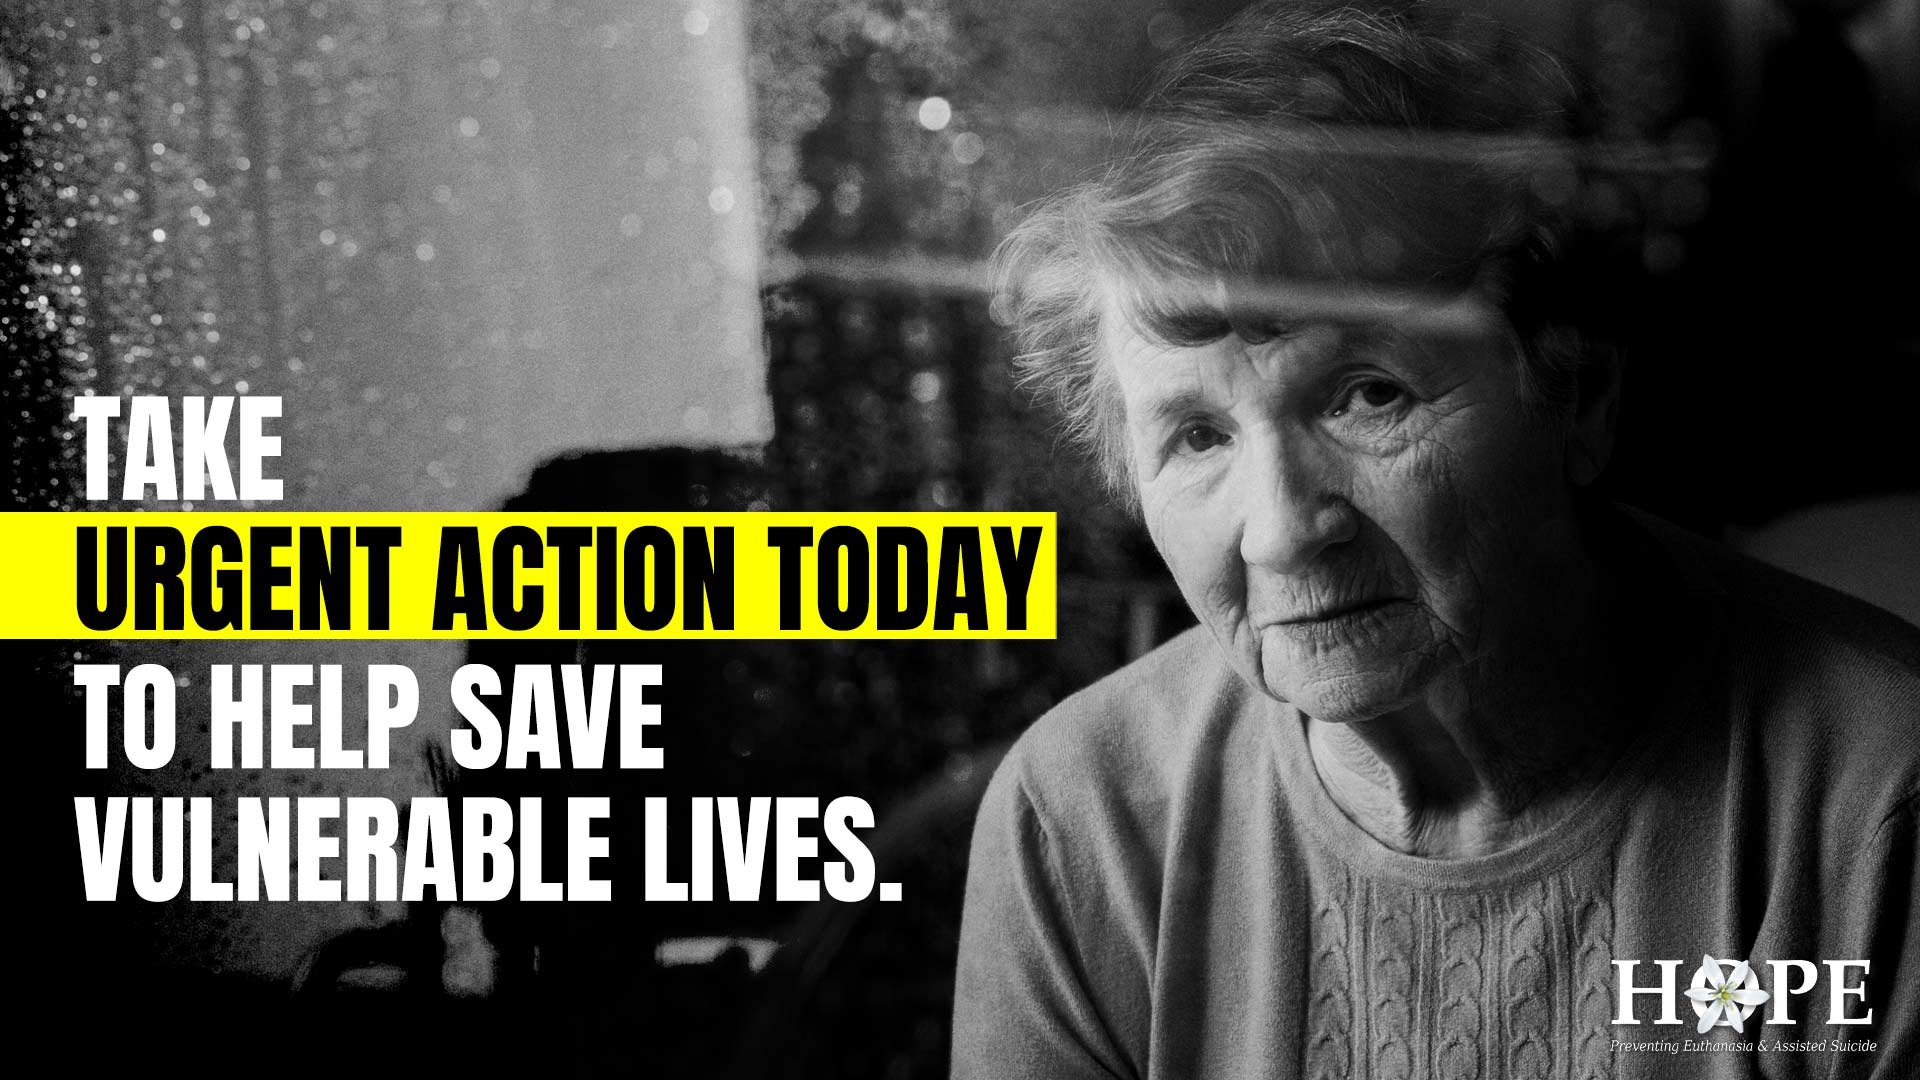 No Euthanasia Petition TAKE URGENT ACTION TODAY TO HELP SAVE VULNERABLE LIVES.